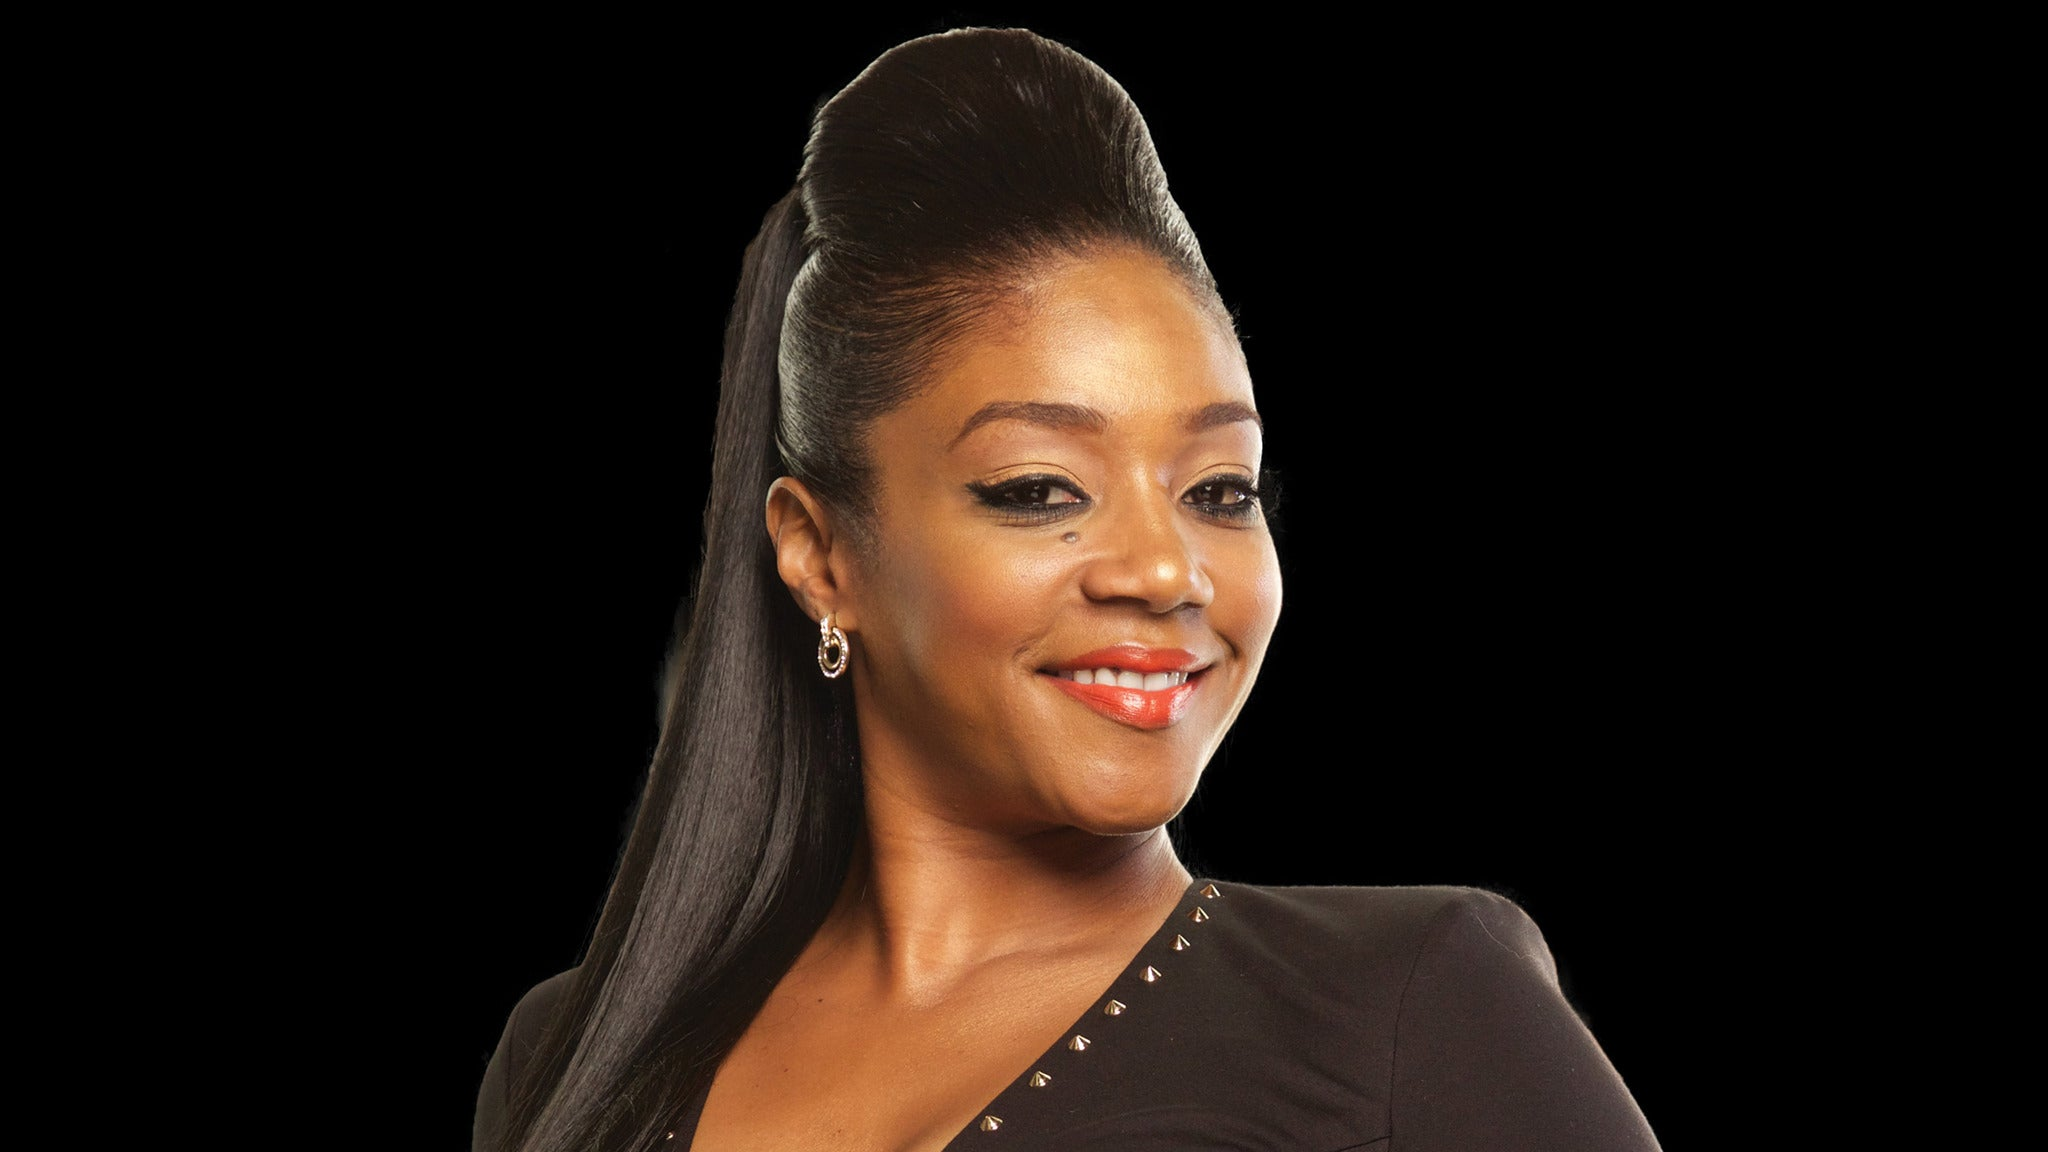 Tiffany Haddish: #SheReady at Pechanga Resort and Casino